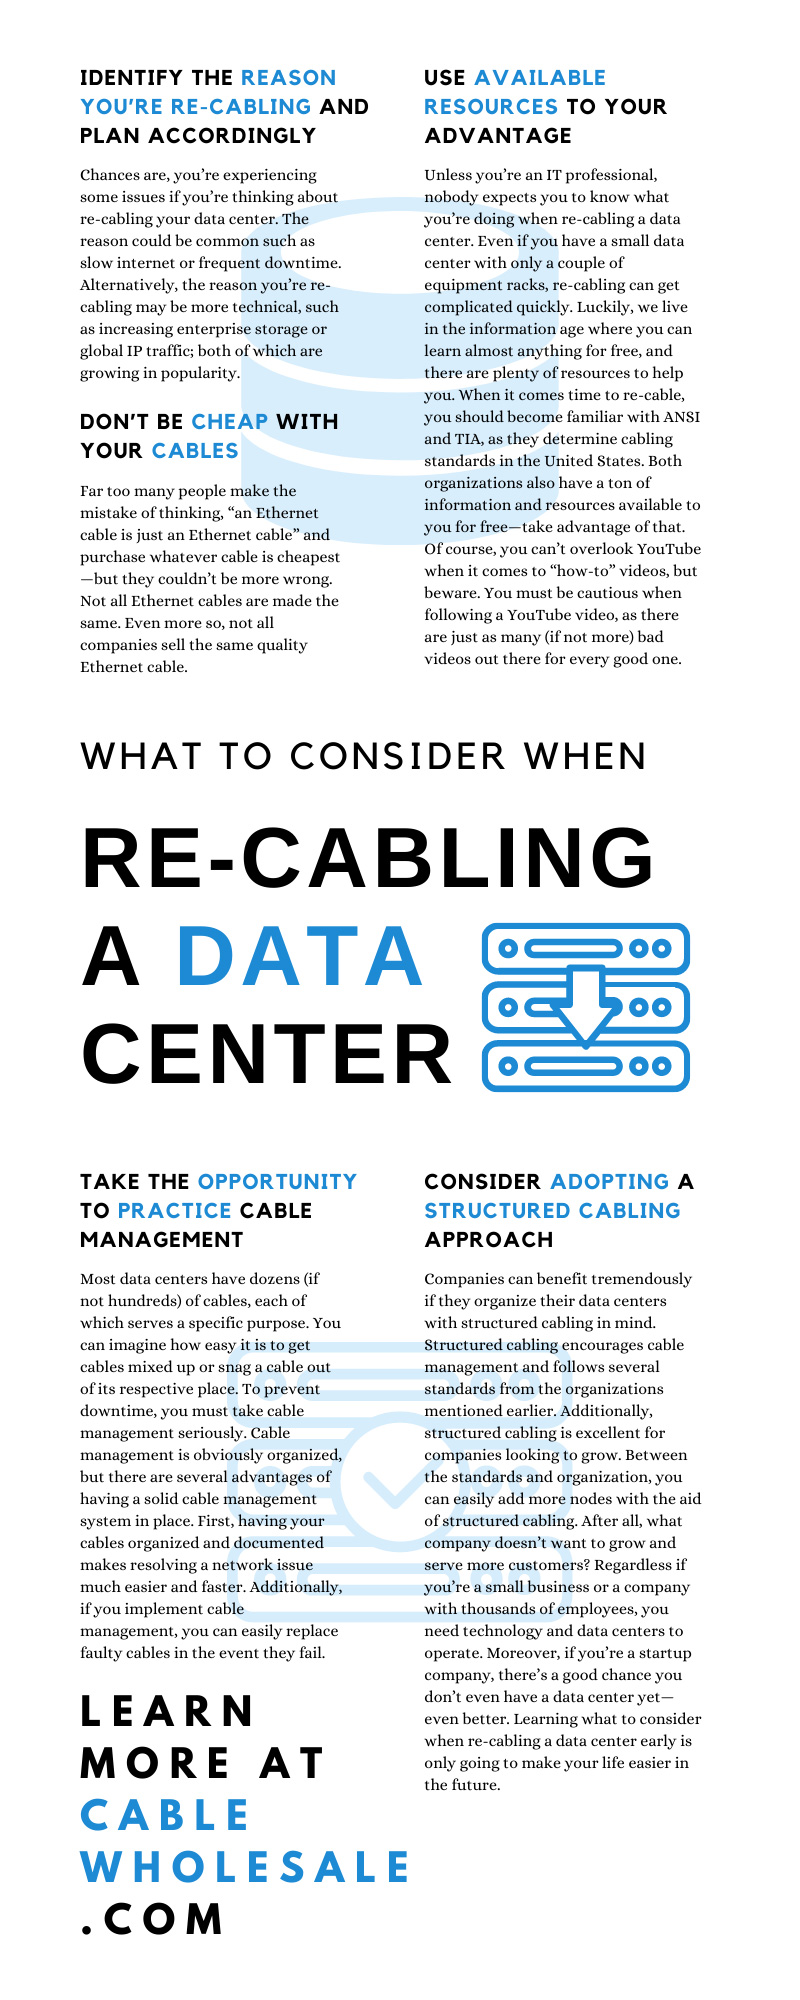 What To Consider When Re-Cabling a Data Center